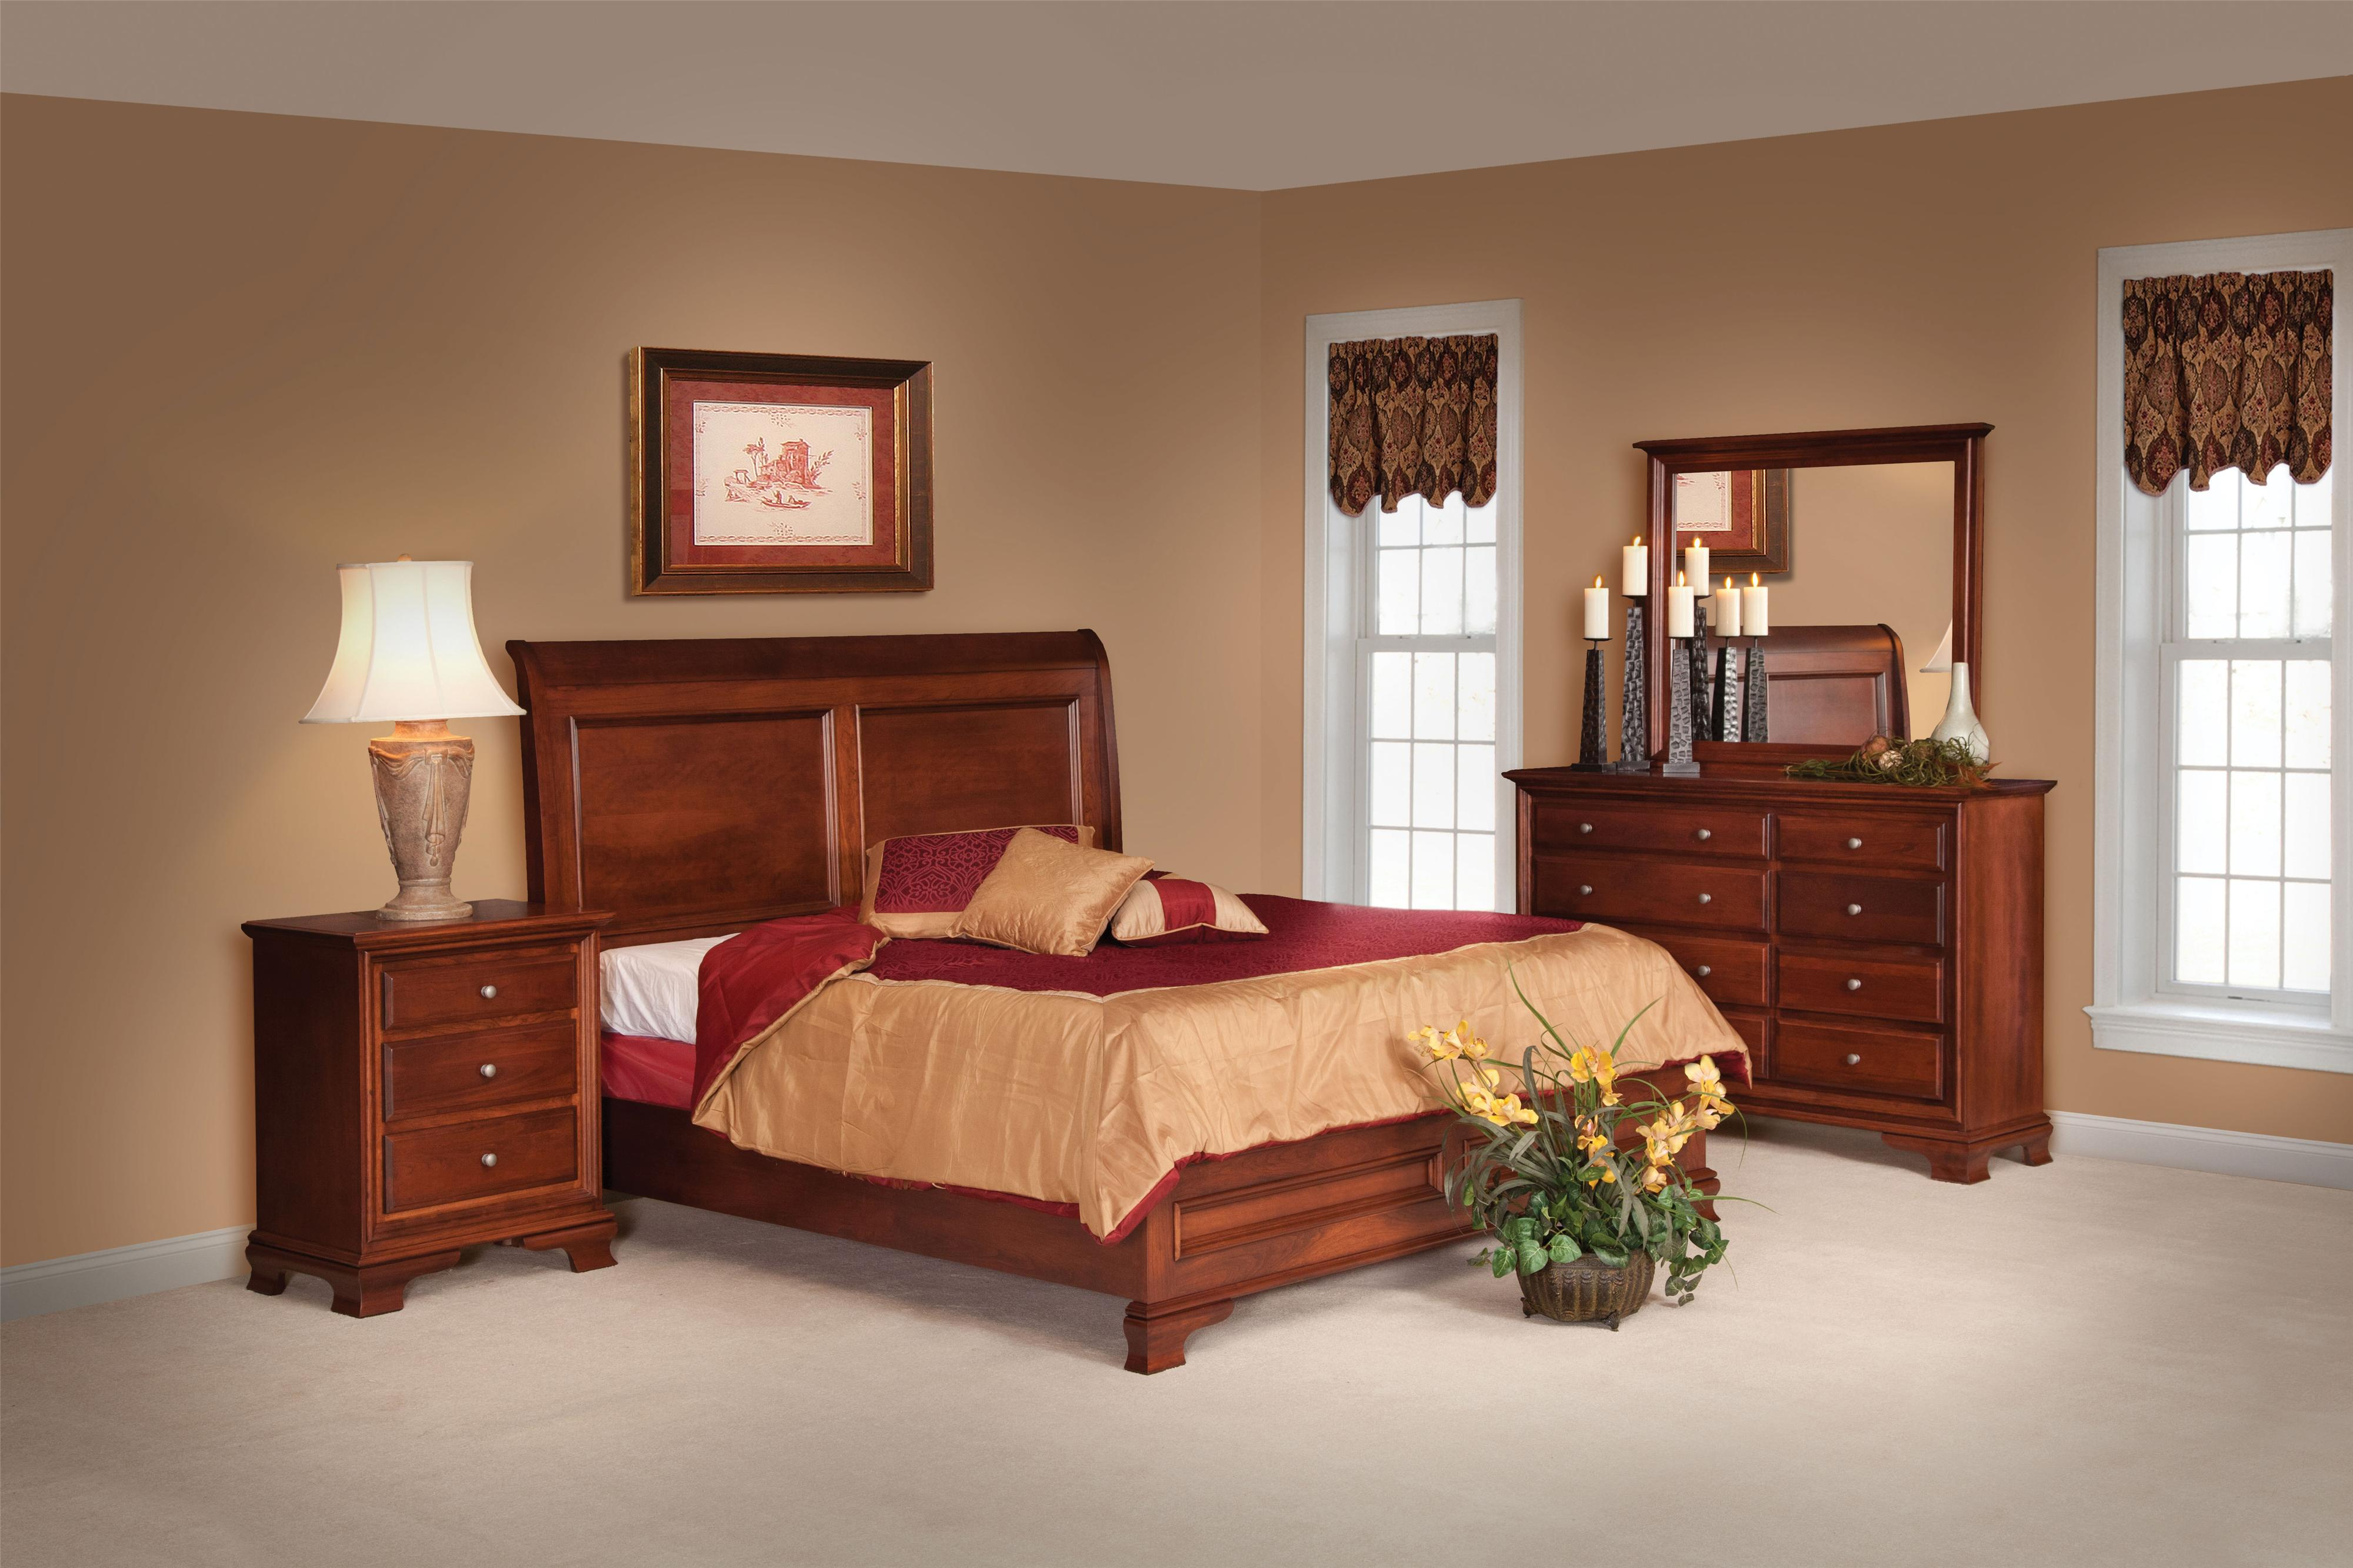 Classic Queen Bedroom Group by Daniels Amish at Sprintz Furniture